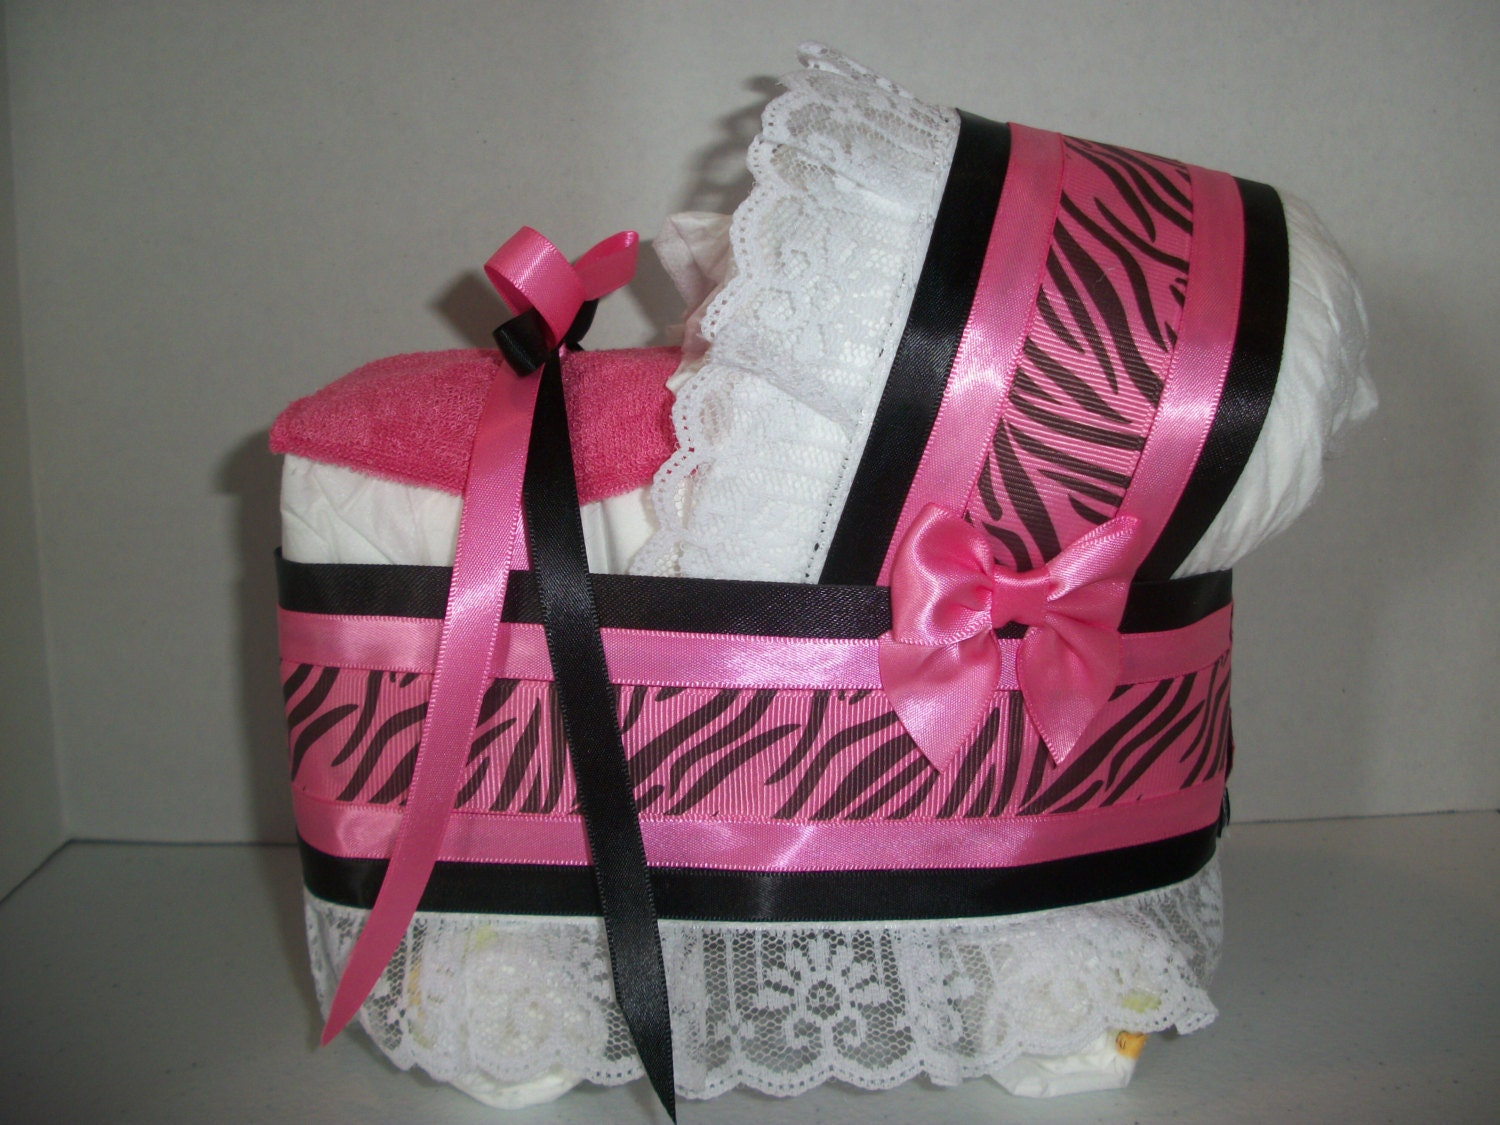 Animal Print Baby Shower Decoration Ideas Of Hot Pink And Black Zebra Print Girl Diaper Bassinet Baby